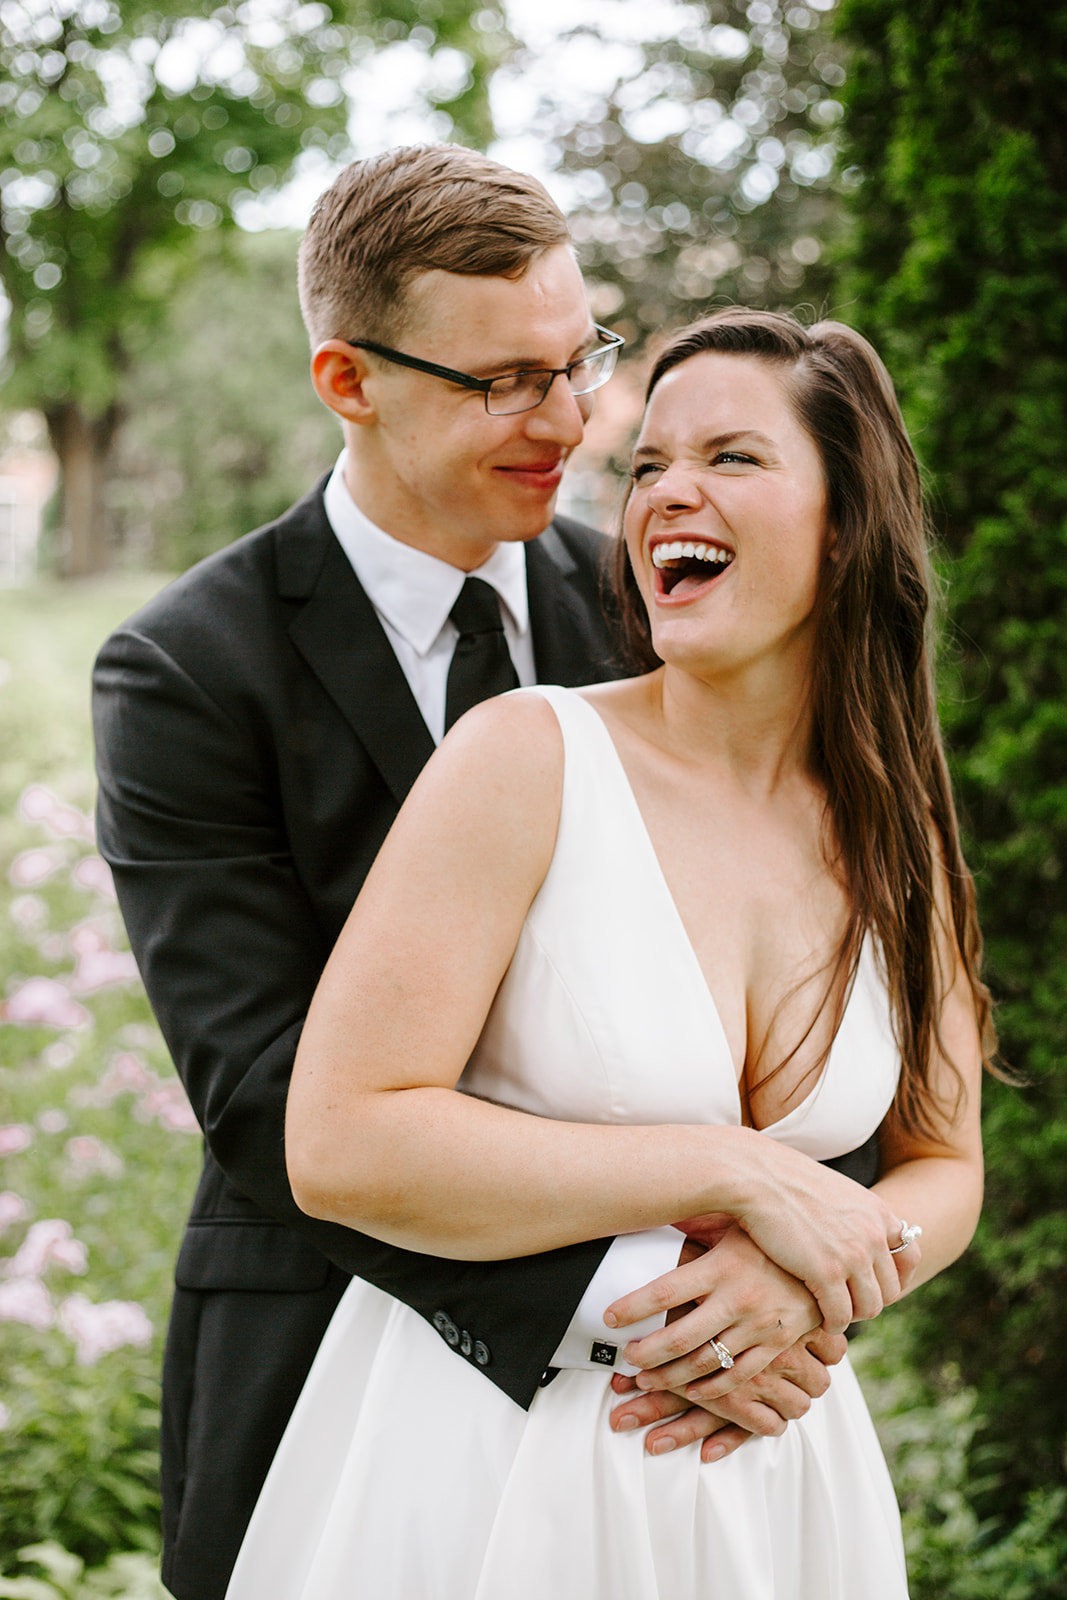 Bride and groom smiling and laughing at each other during their Minneapolis wedding day